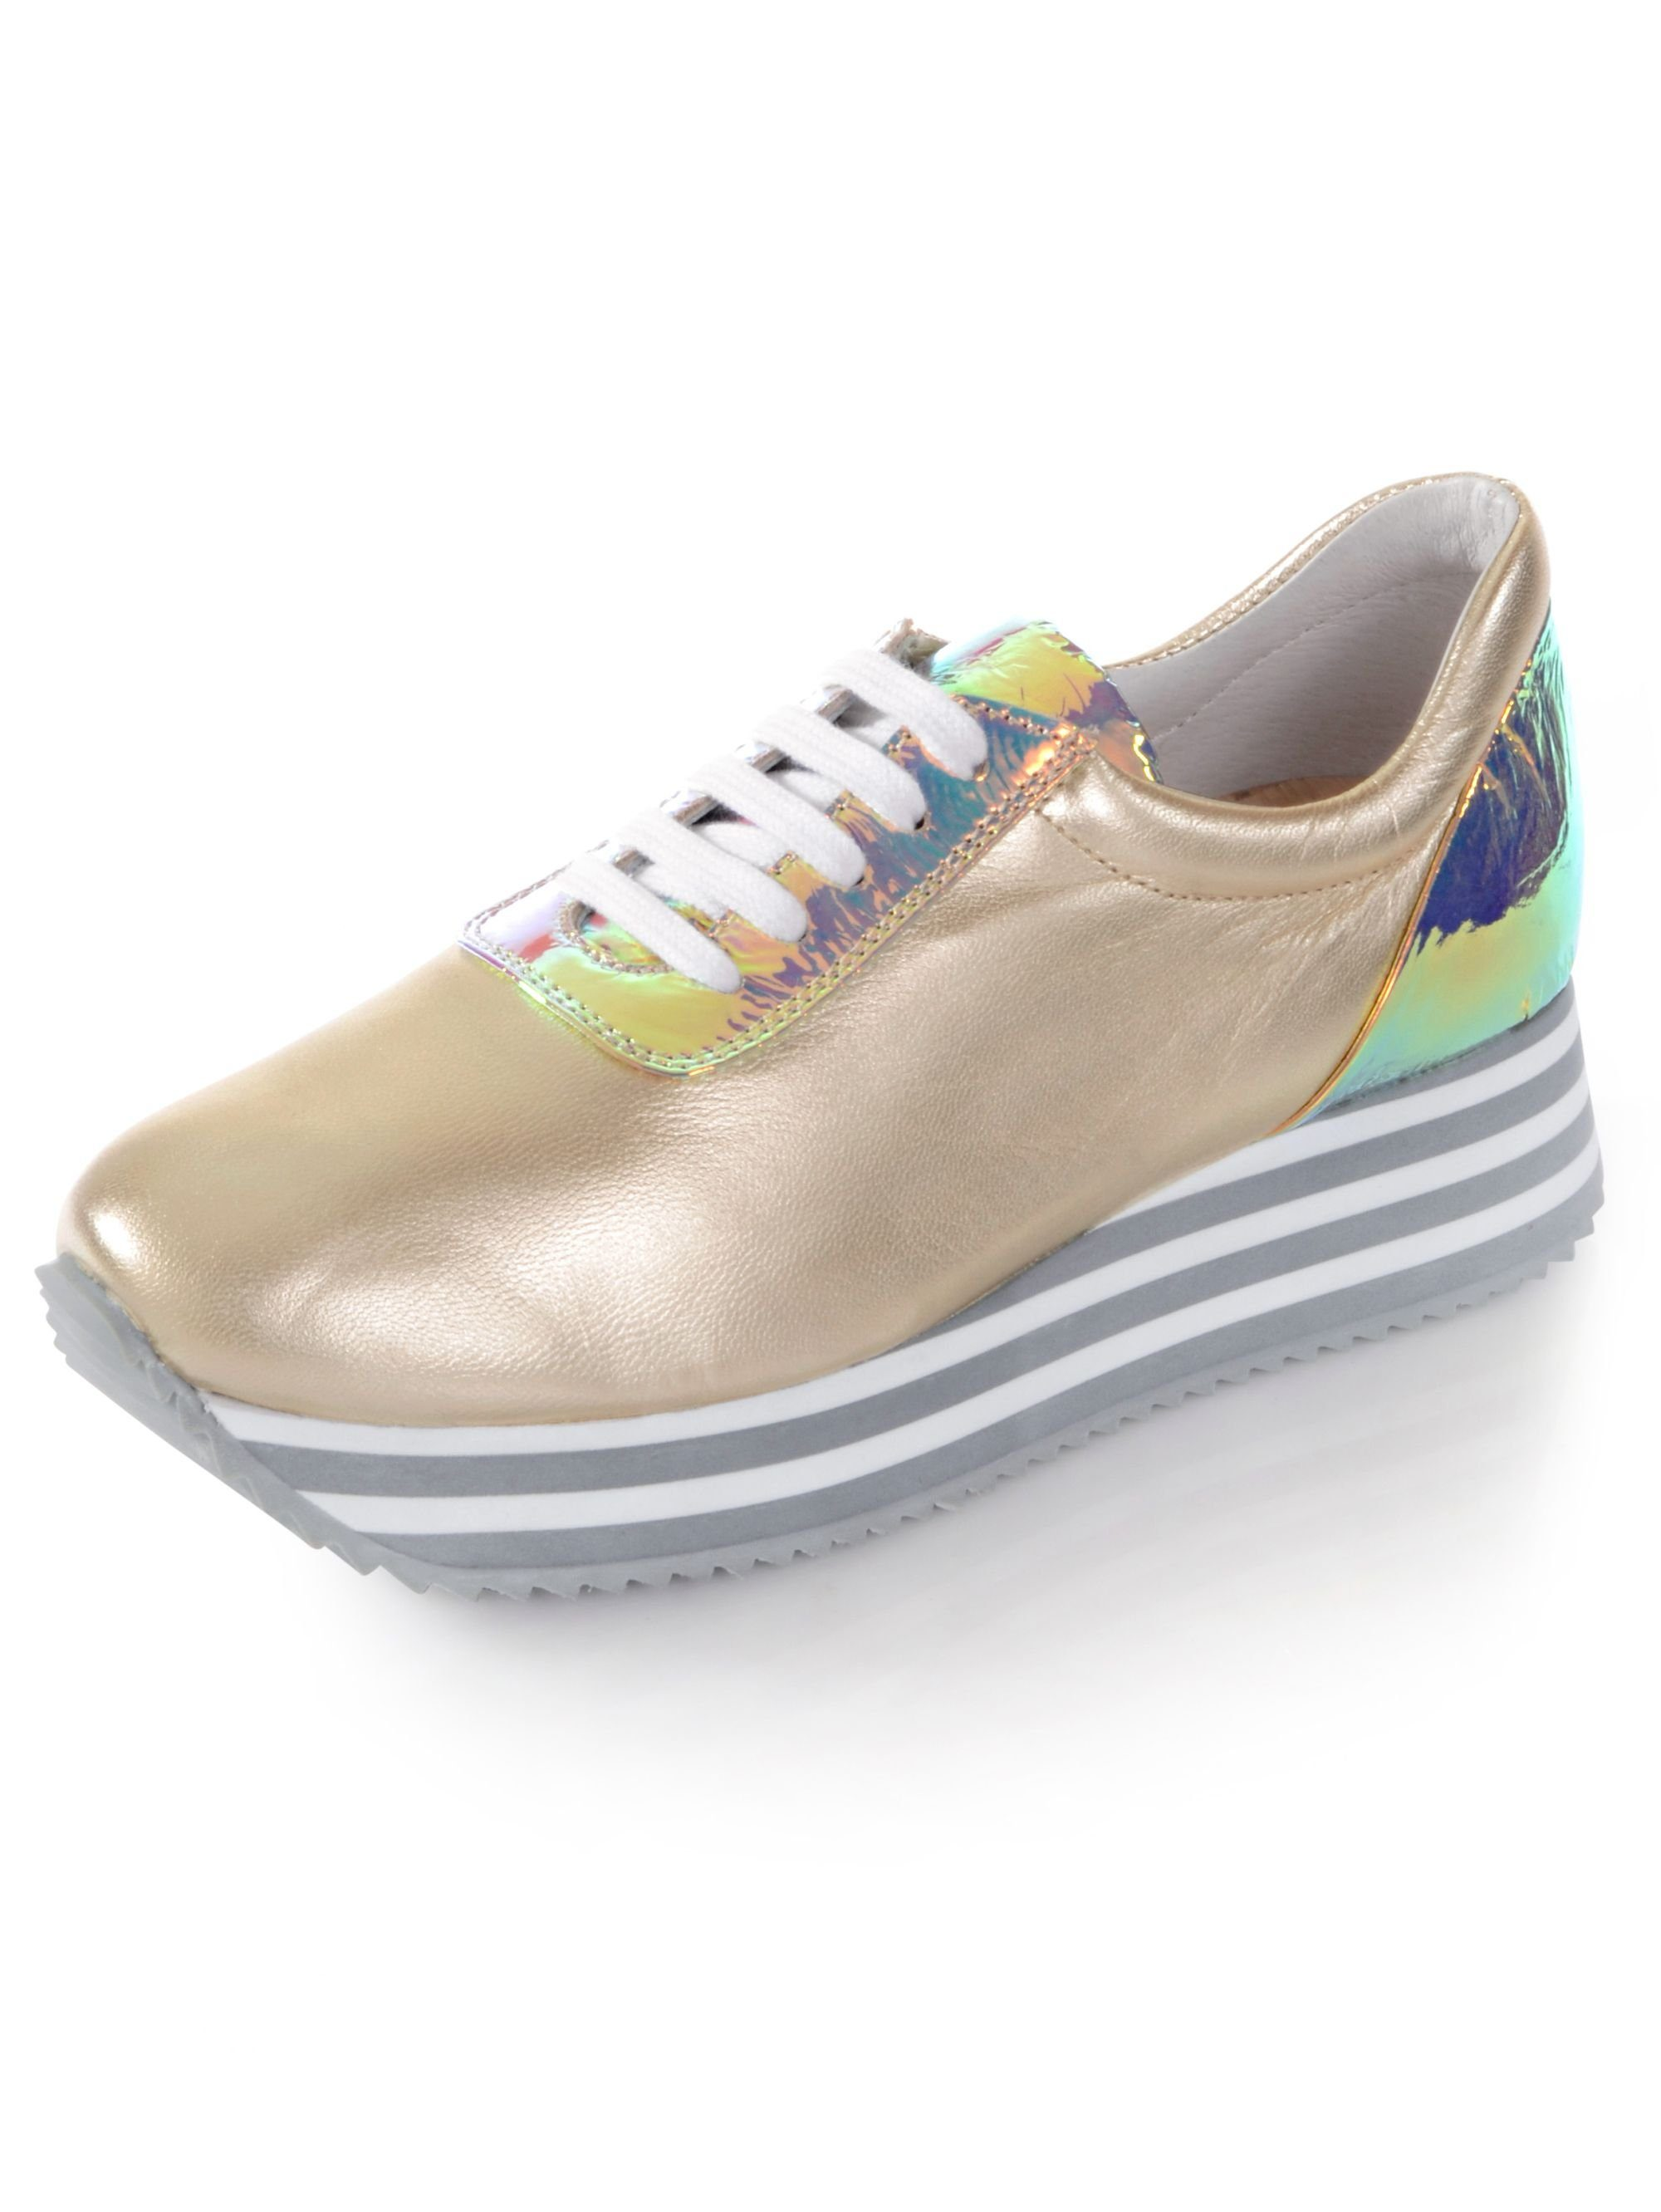 Alba Moda Sneaker im Metallic-Look online kaufen  champagner#ft5_slash#goldfb